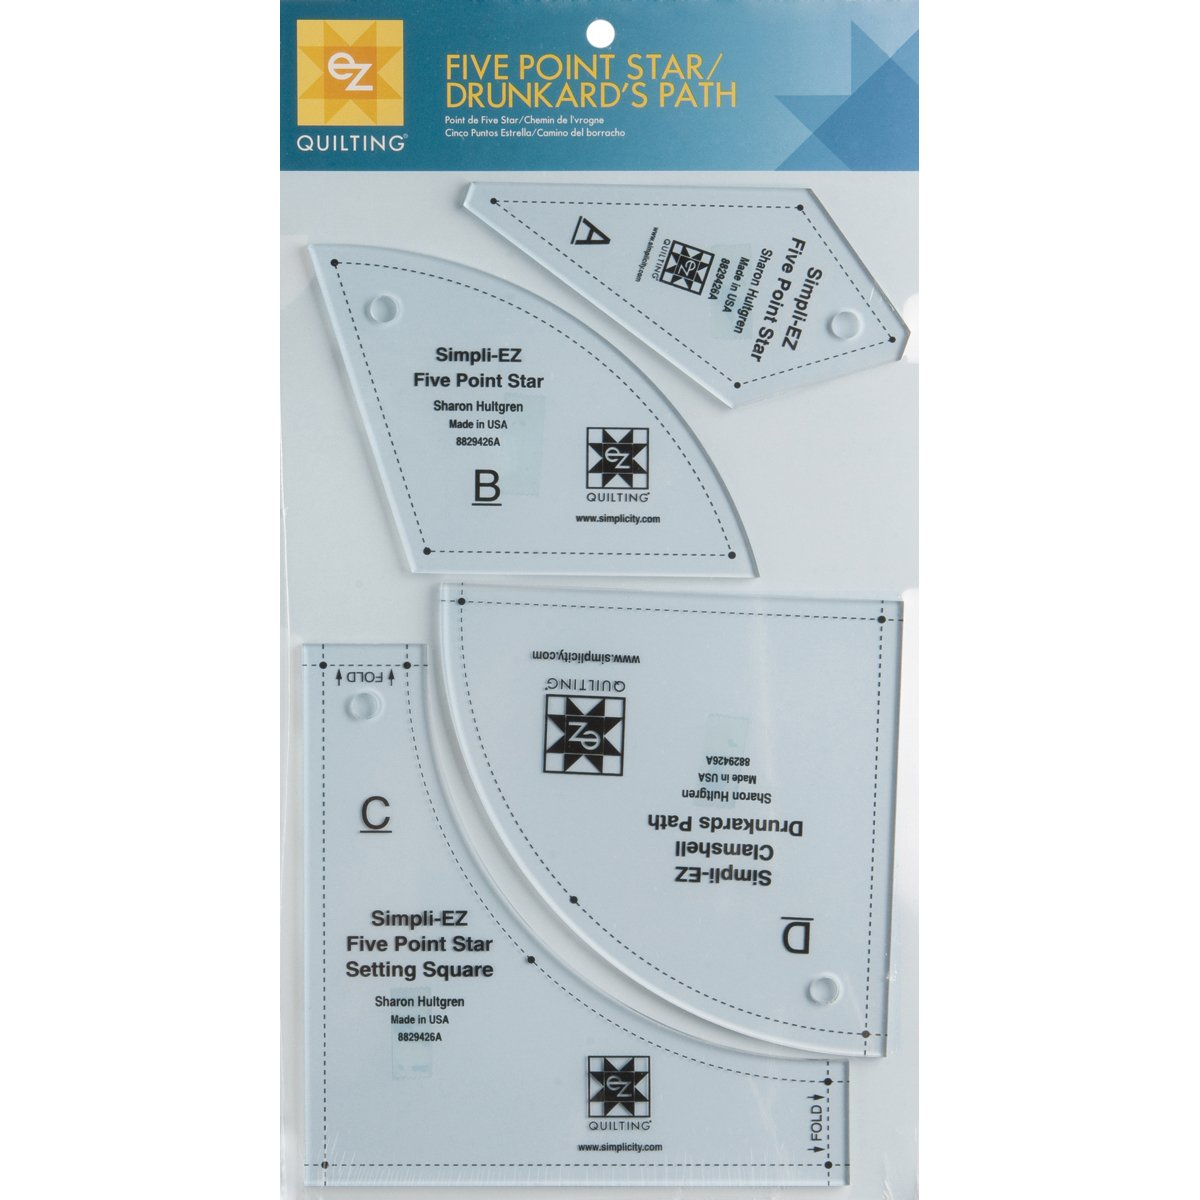 Wrights 8829426A Five Point Star/Drunkard's Path Template, 4-Pack Notions - In Network